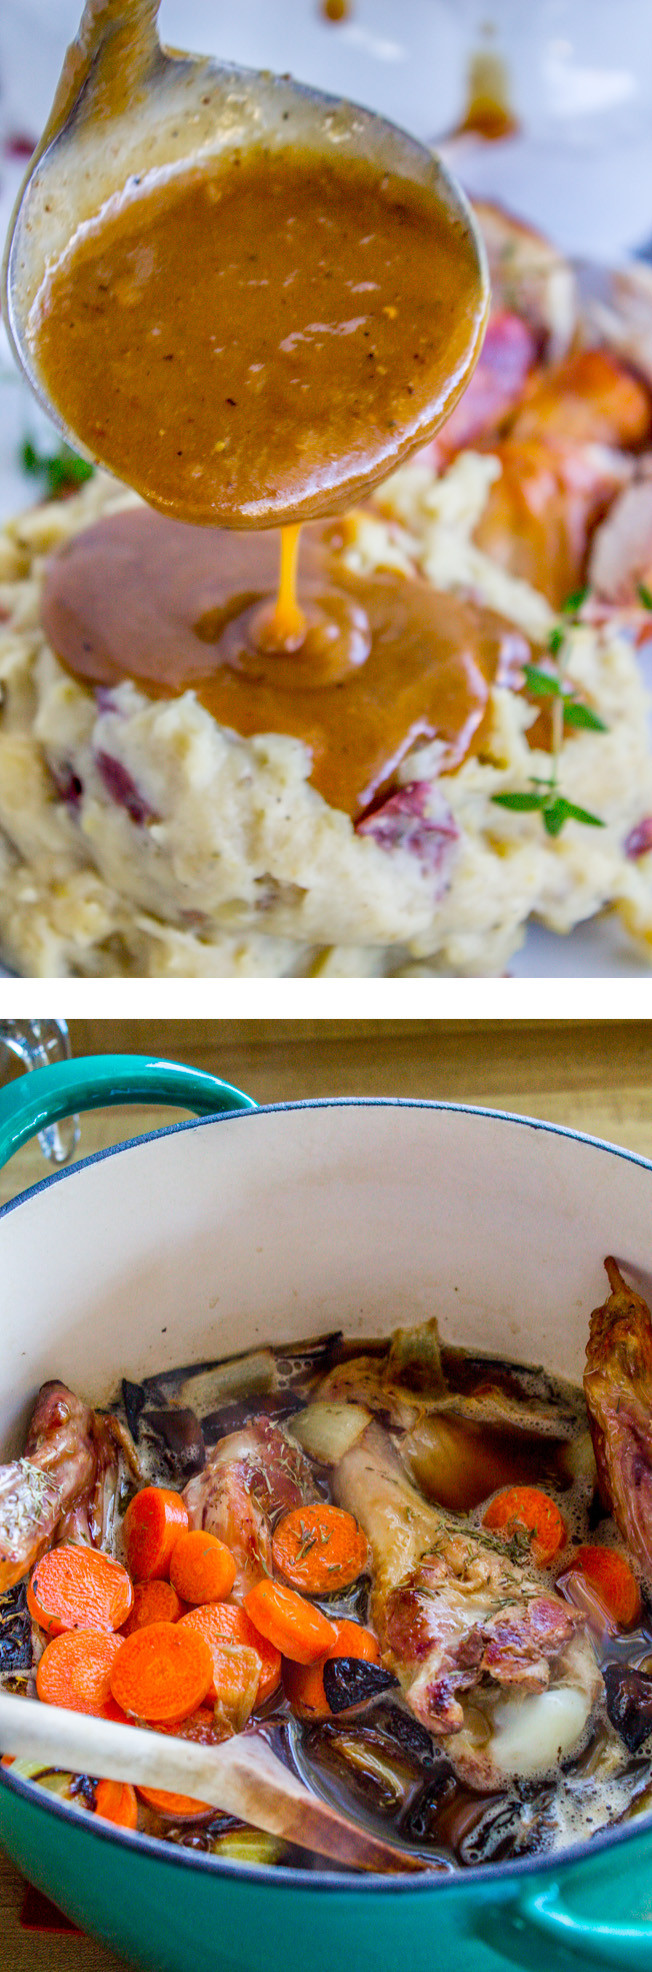 Make Ahead Turkey Gravy  Make Ahead Turkey Gravy for Thanksgiving The Food Charlatan